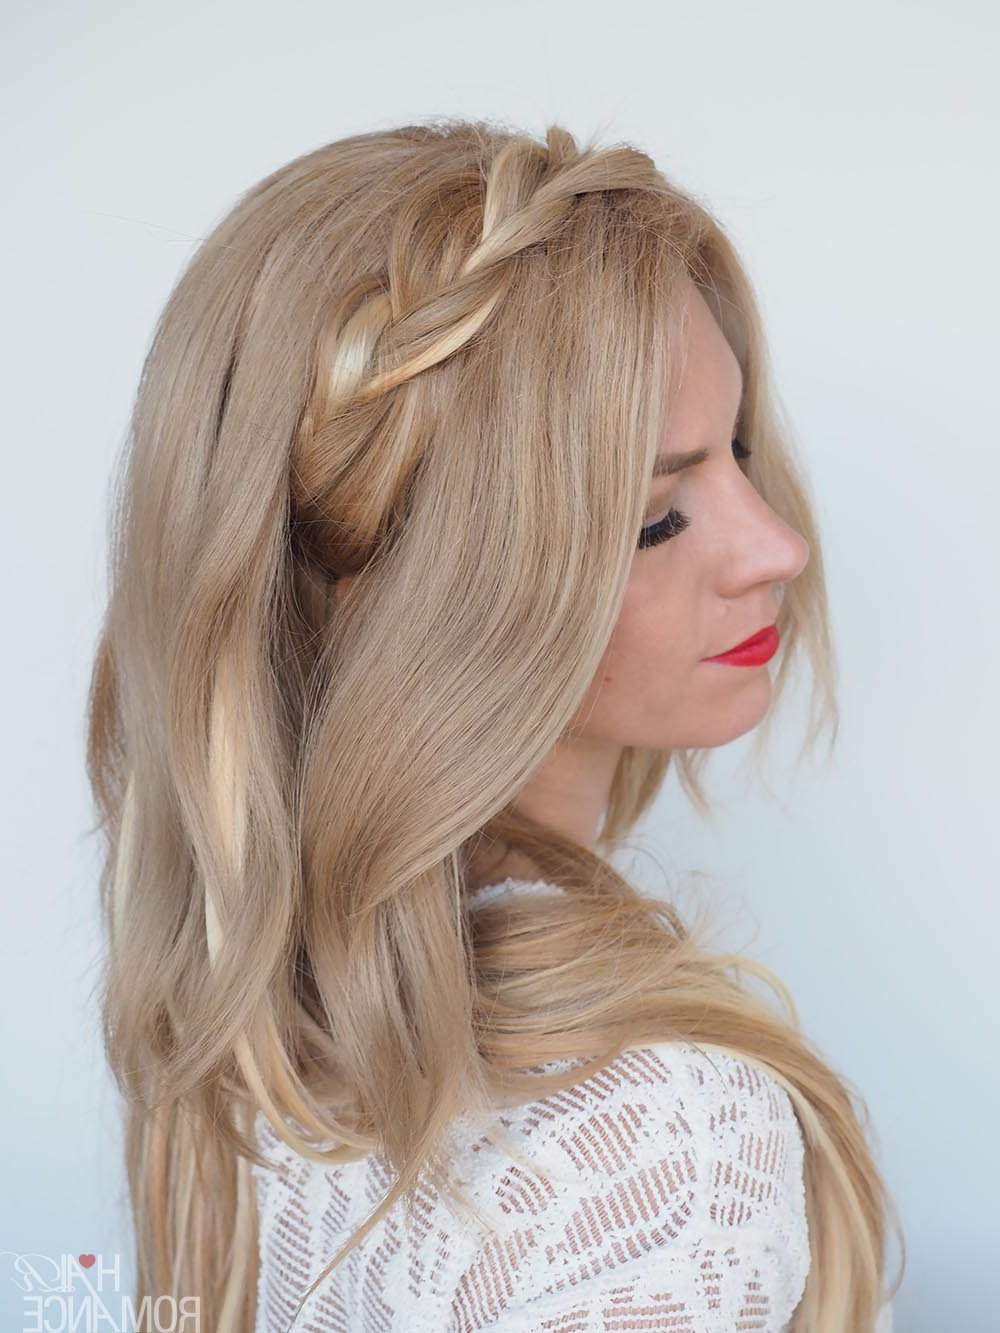 Braided Headband Hairstyle Tutorial – Hair Romance For Newest Braid Hairstyles With Headband (View 3 of 20)